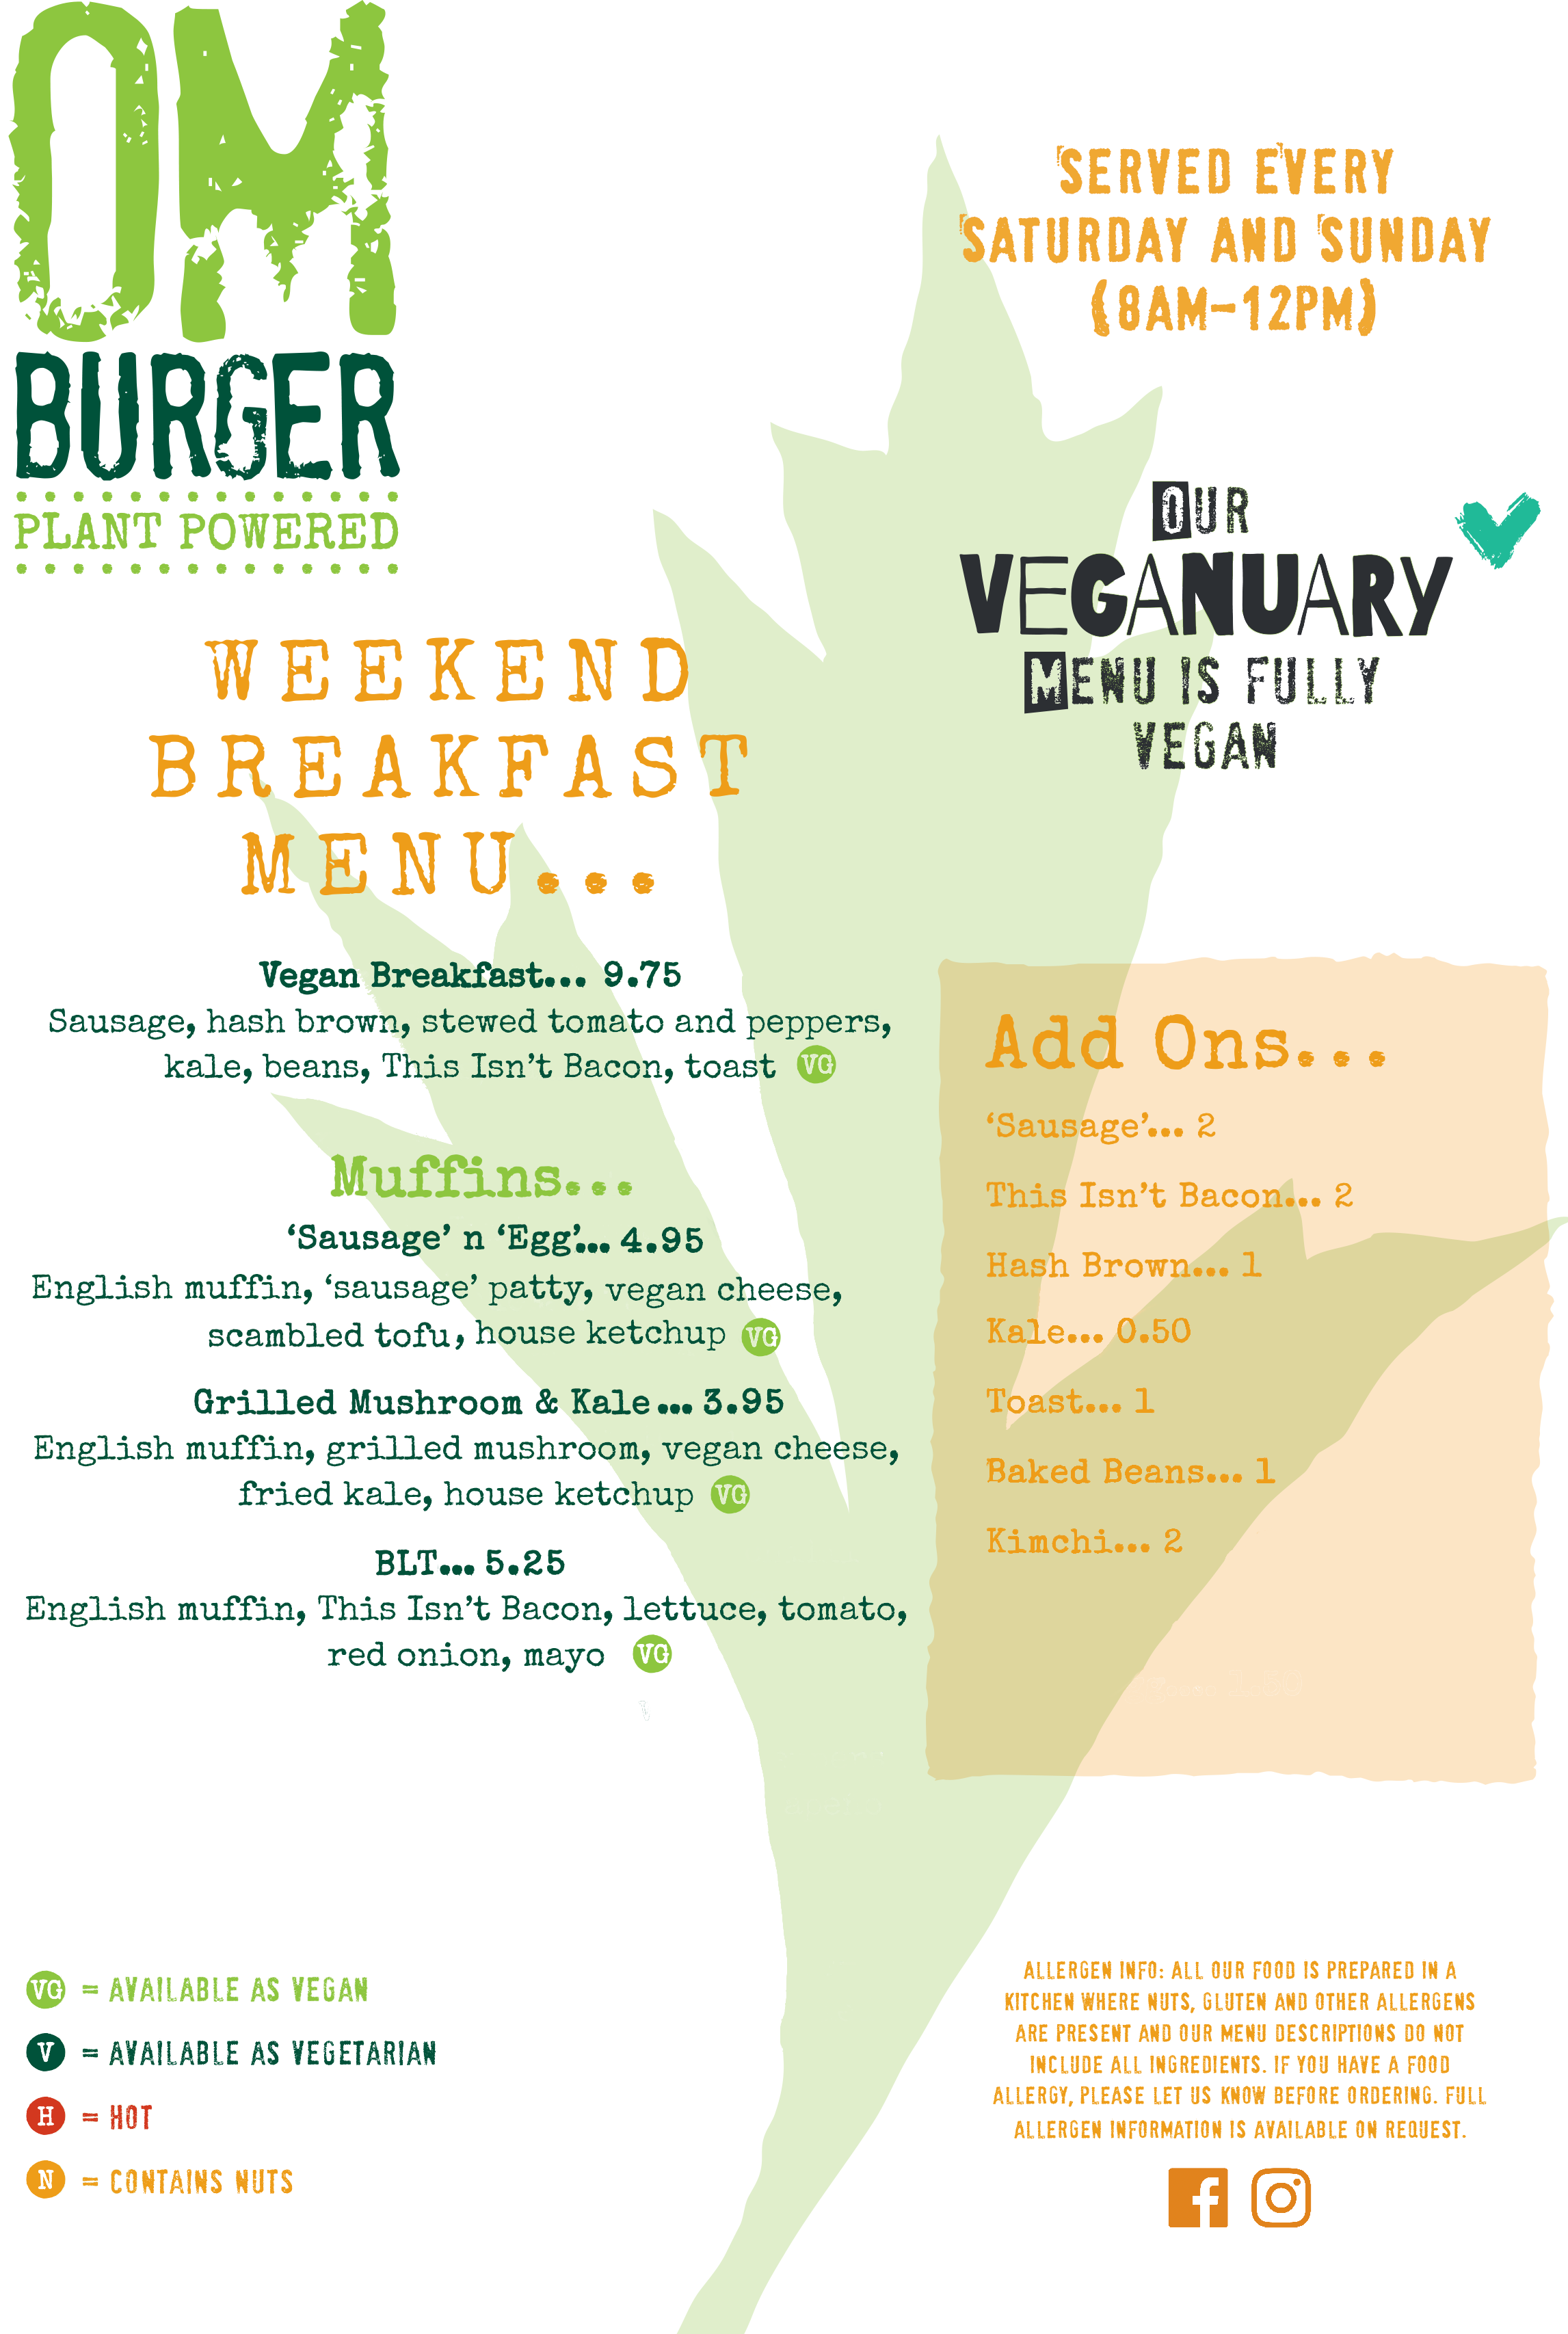 Veganuary 2021 Breakfast Menu @ Om Burger Bristol